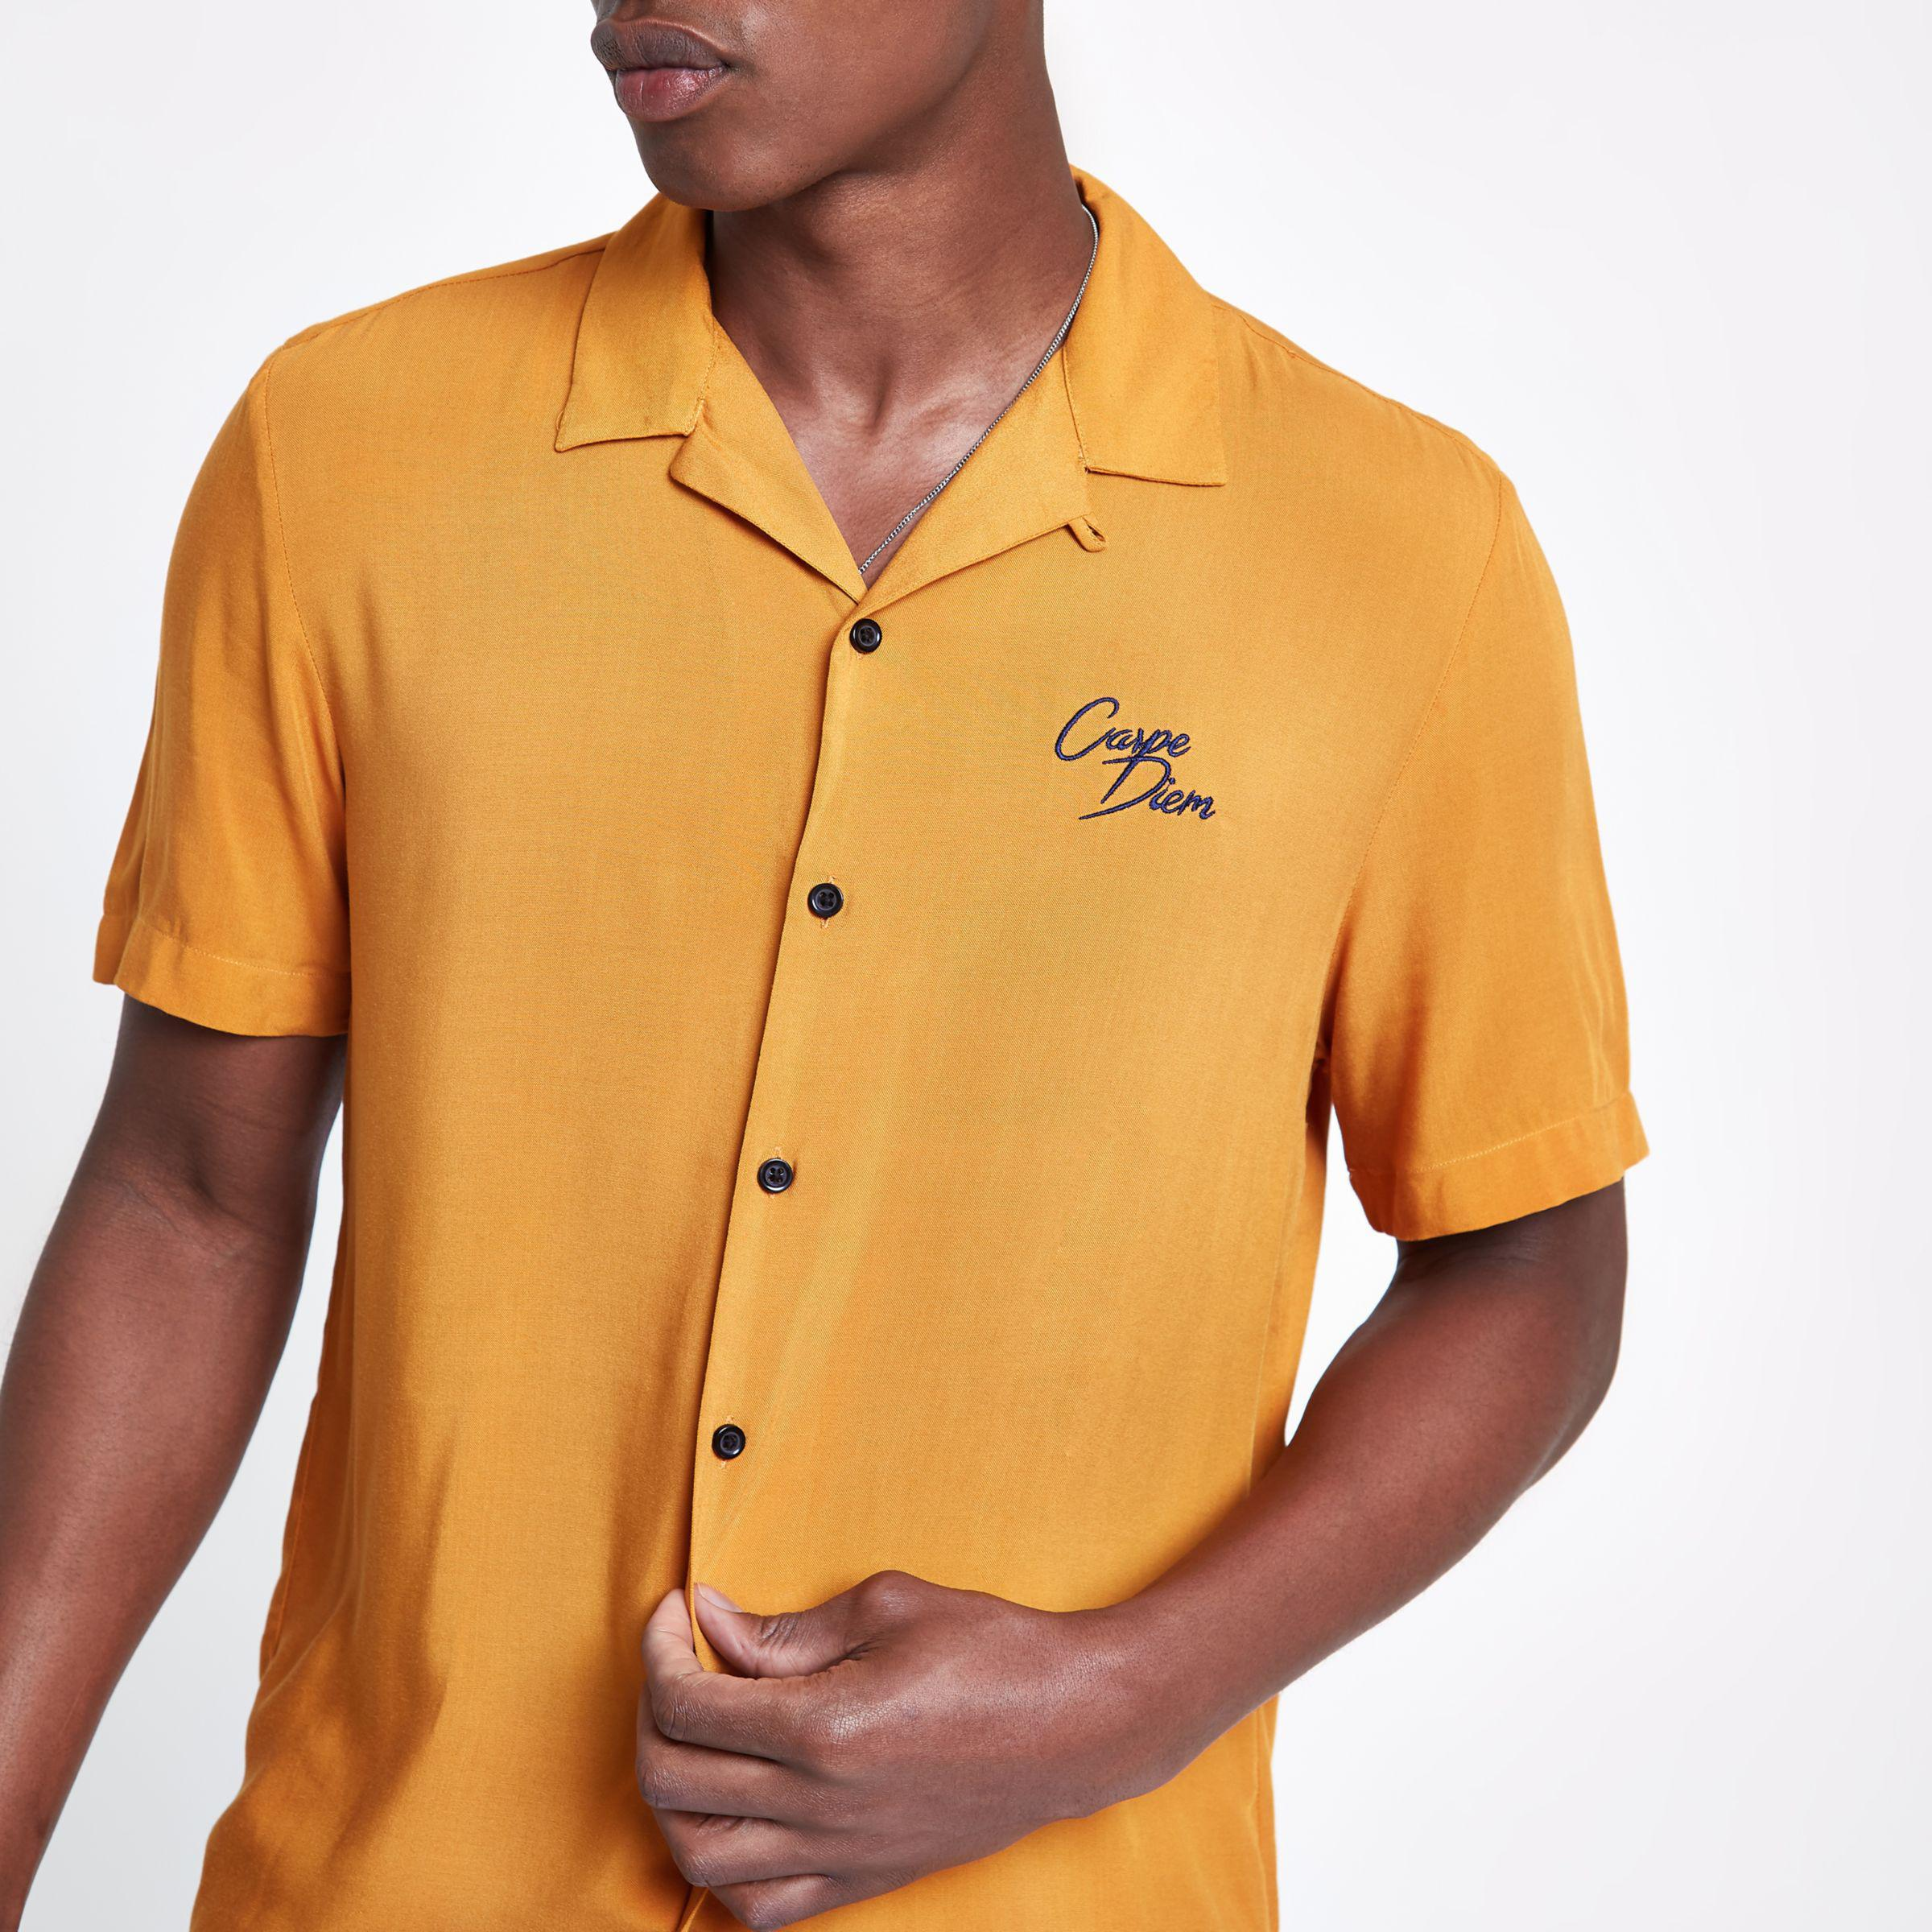 Mens Yellow carpe diem embroidered shirt River Island Buy Online Outlet The Cheapest Clearance Store Sale Online EHZ6d